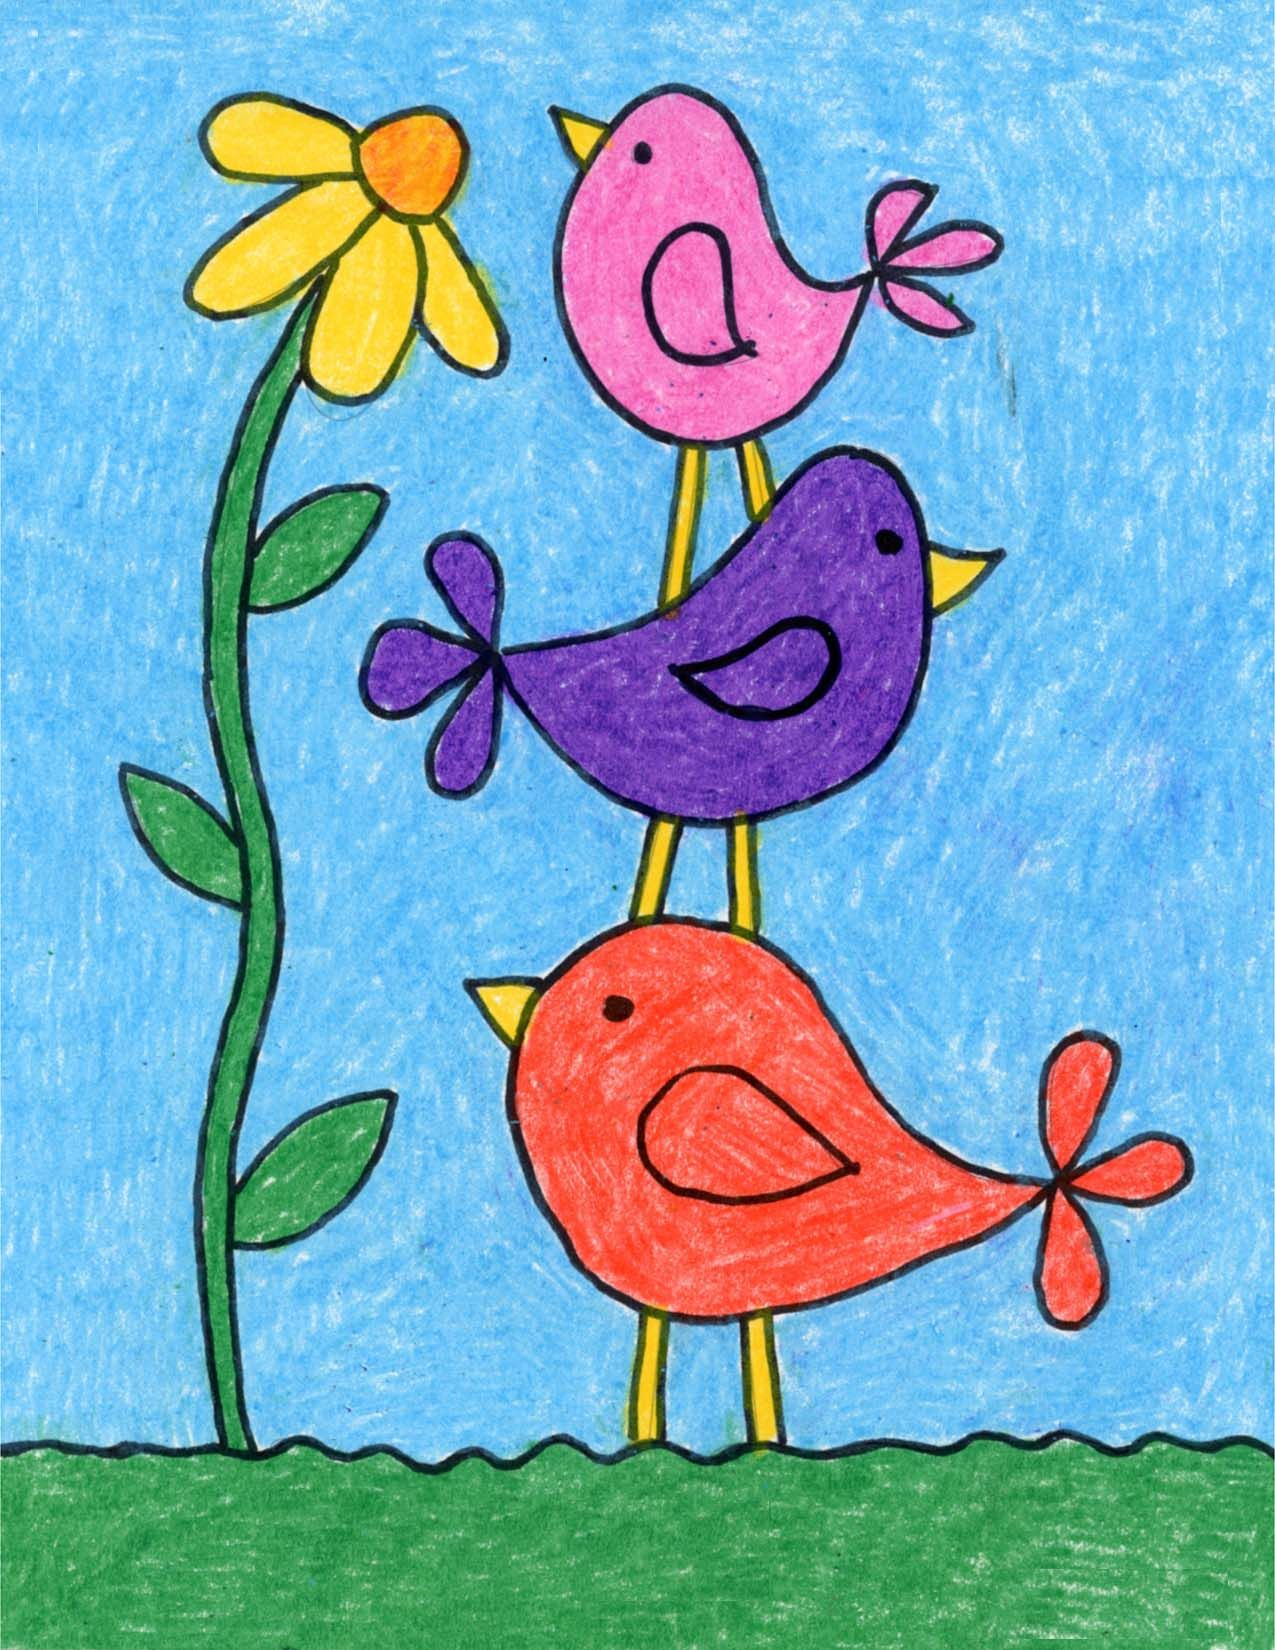 Draw Simple Birds Art Projects For Kids Bird Drawing For Kids Kids Art Projects Bird Drawings